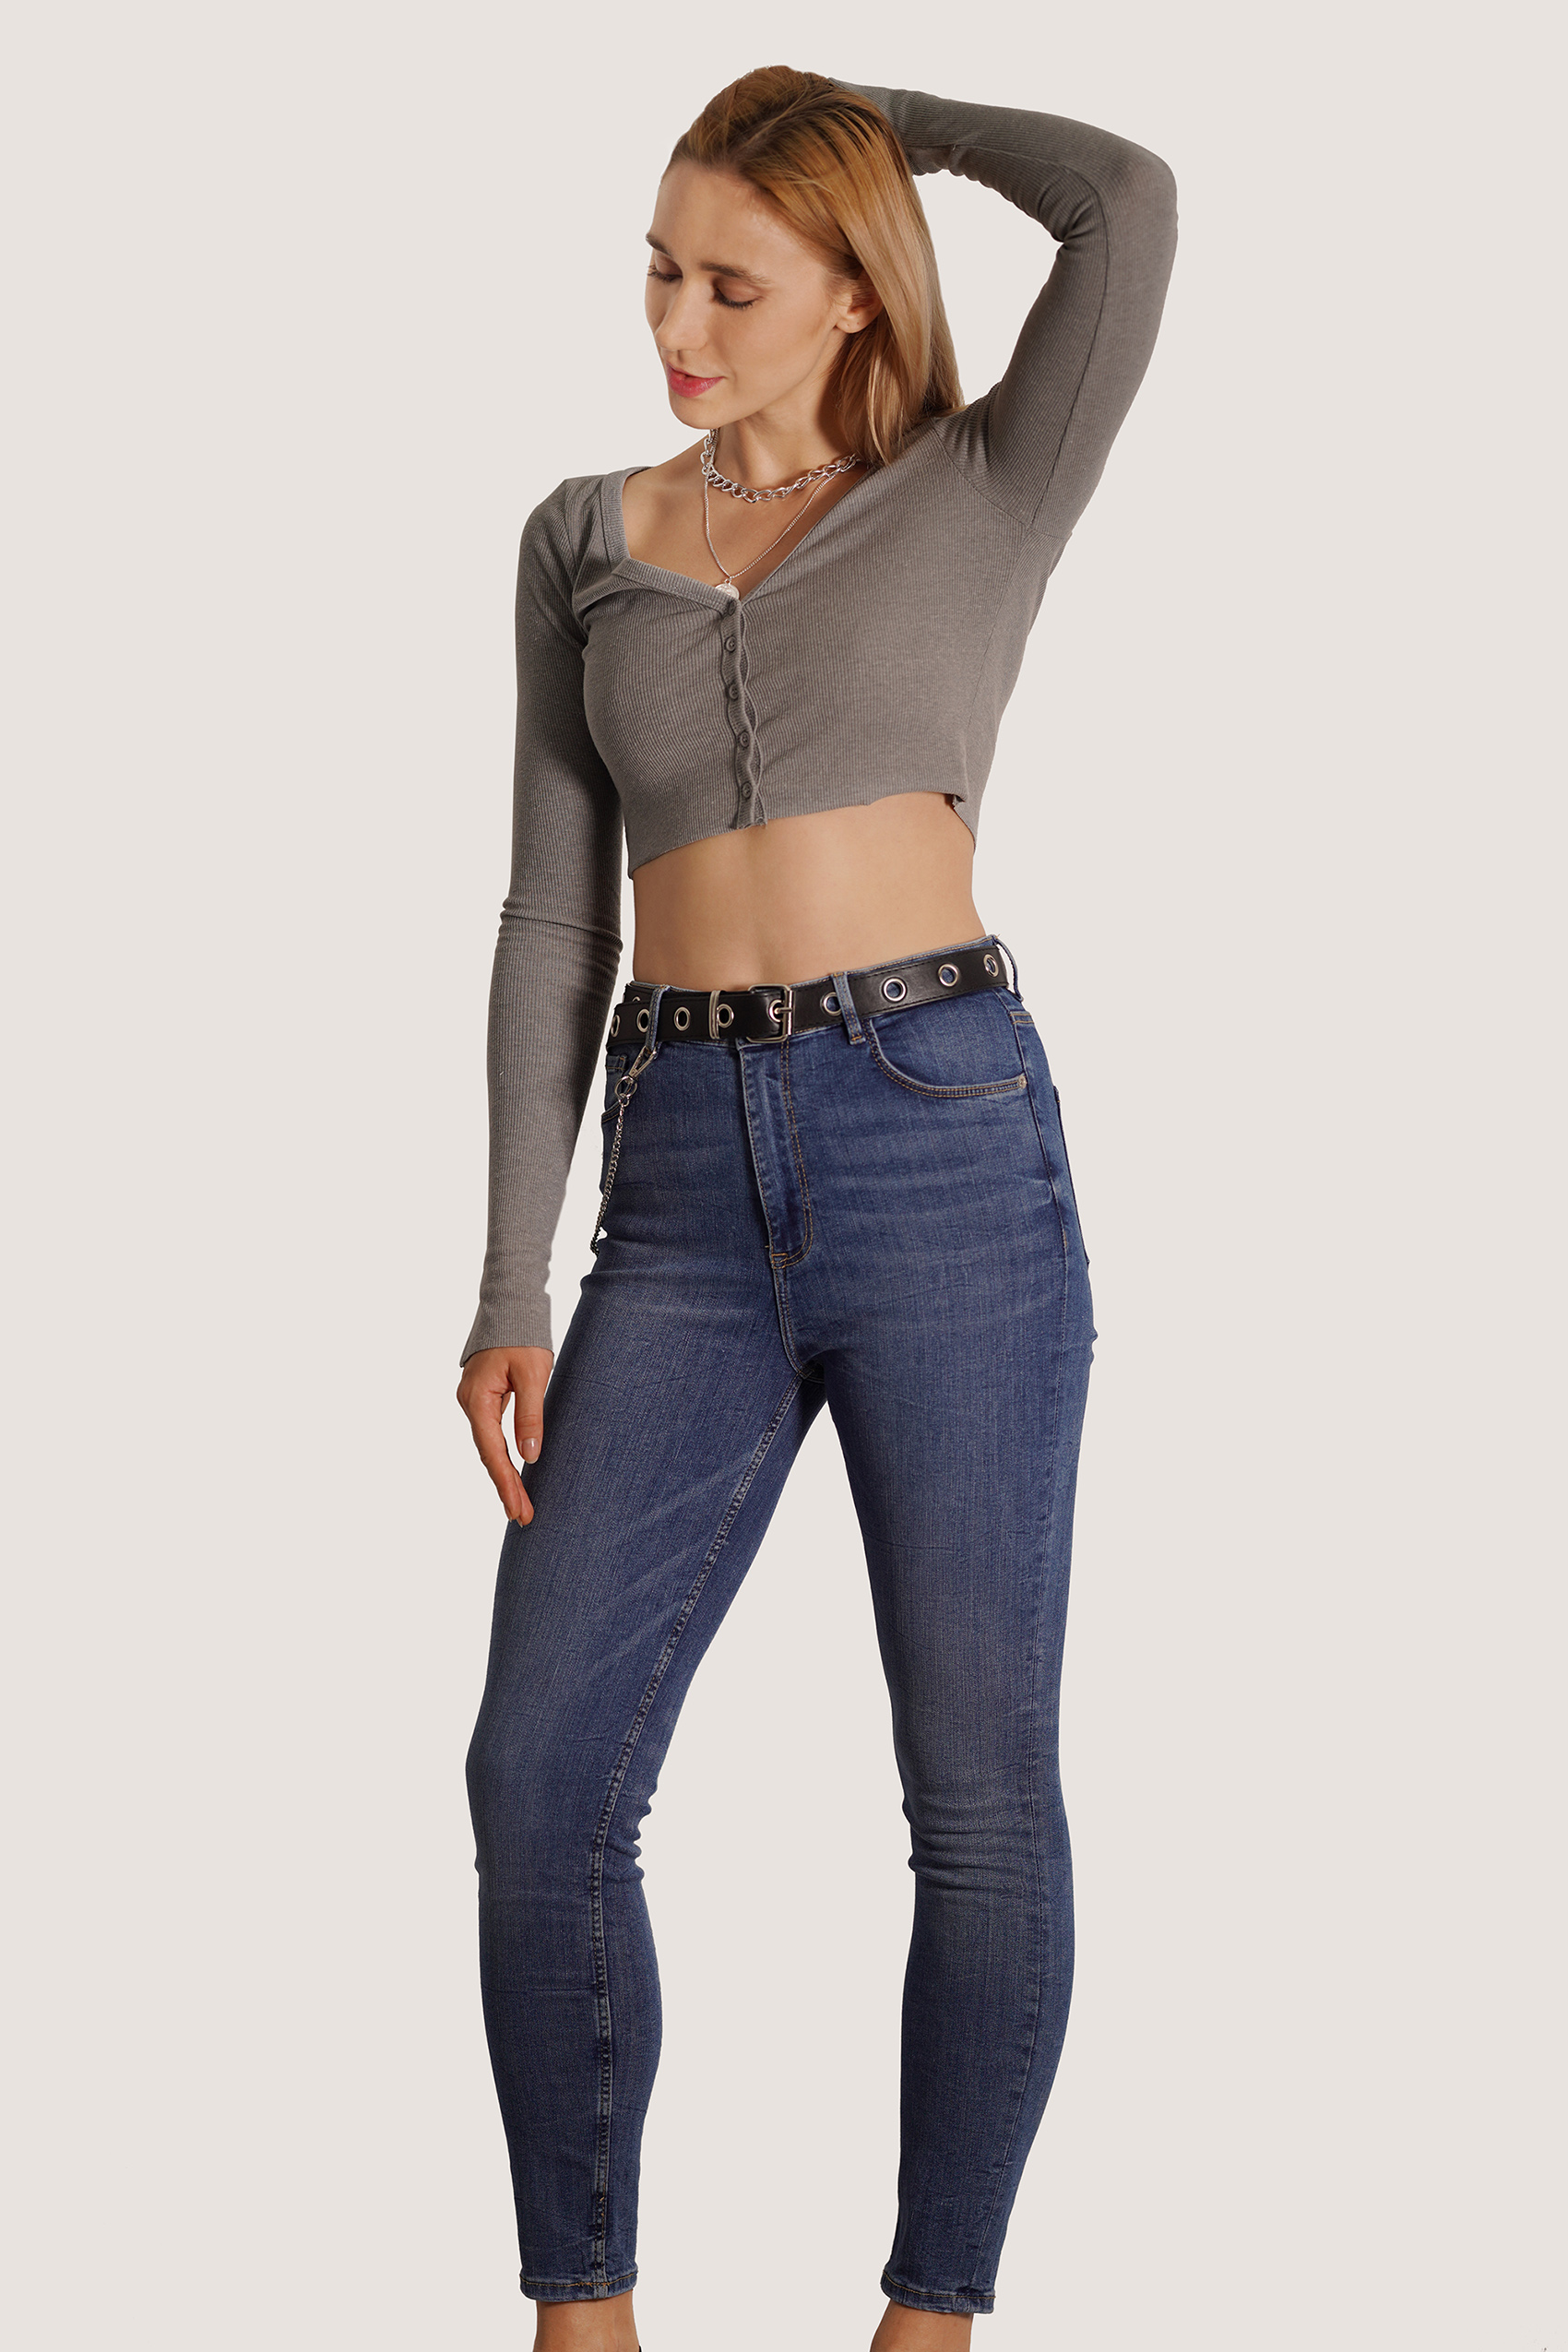 Long Sleeve Ribbed Knit Crop Top Ladies